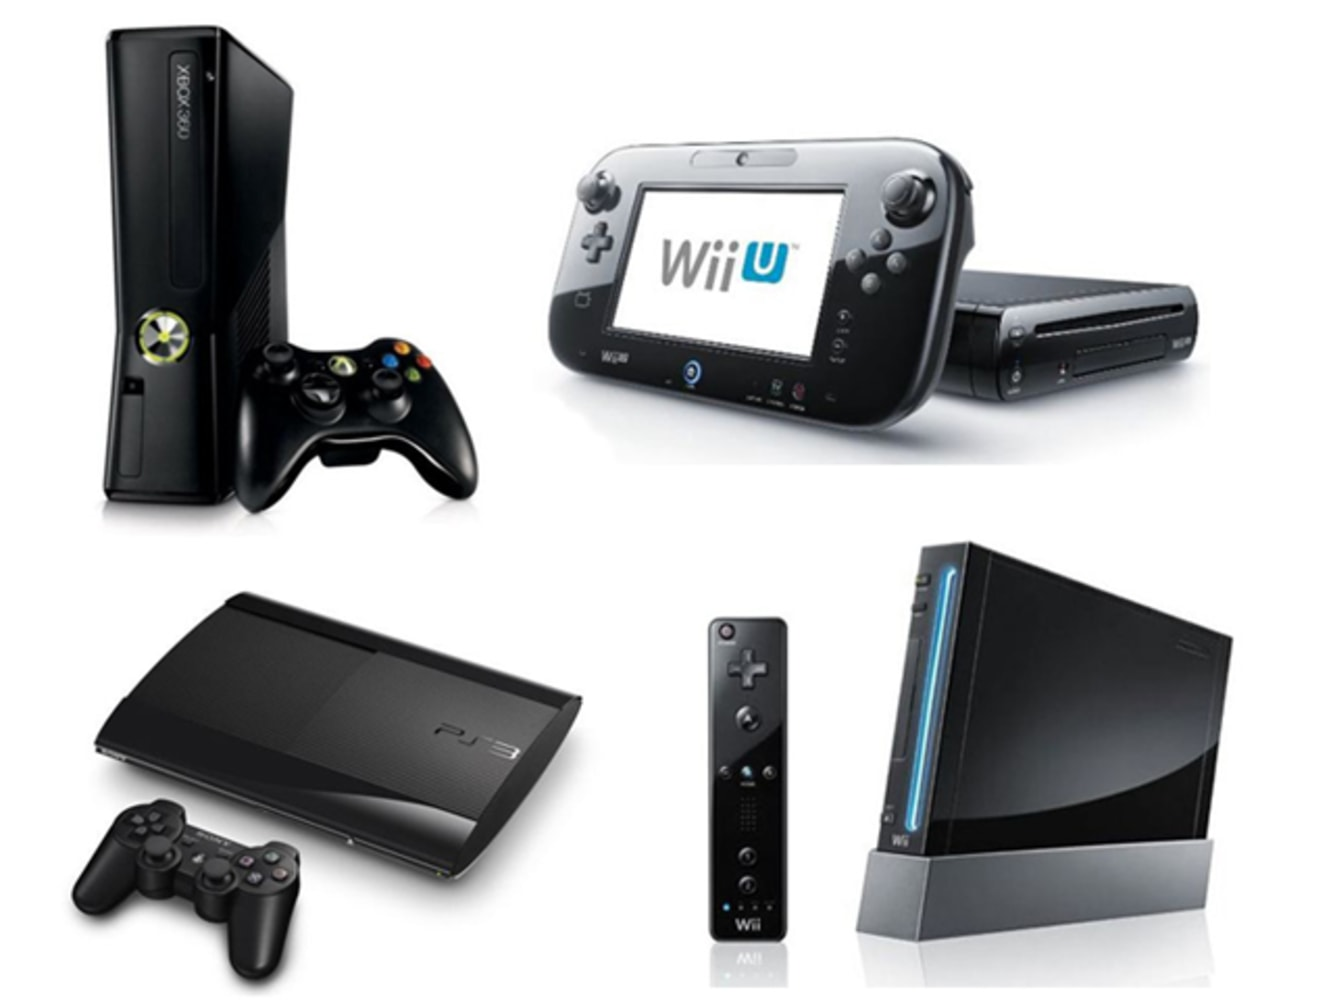 wii u xbox 360 playstation 3 which game machine should